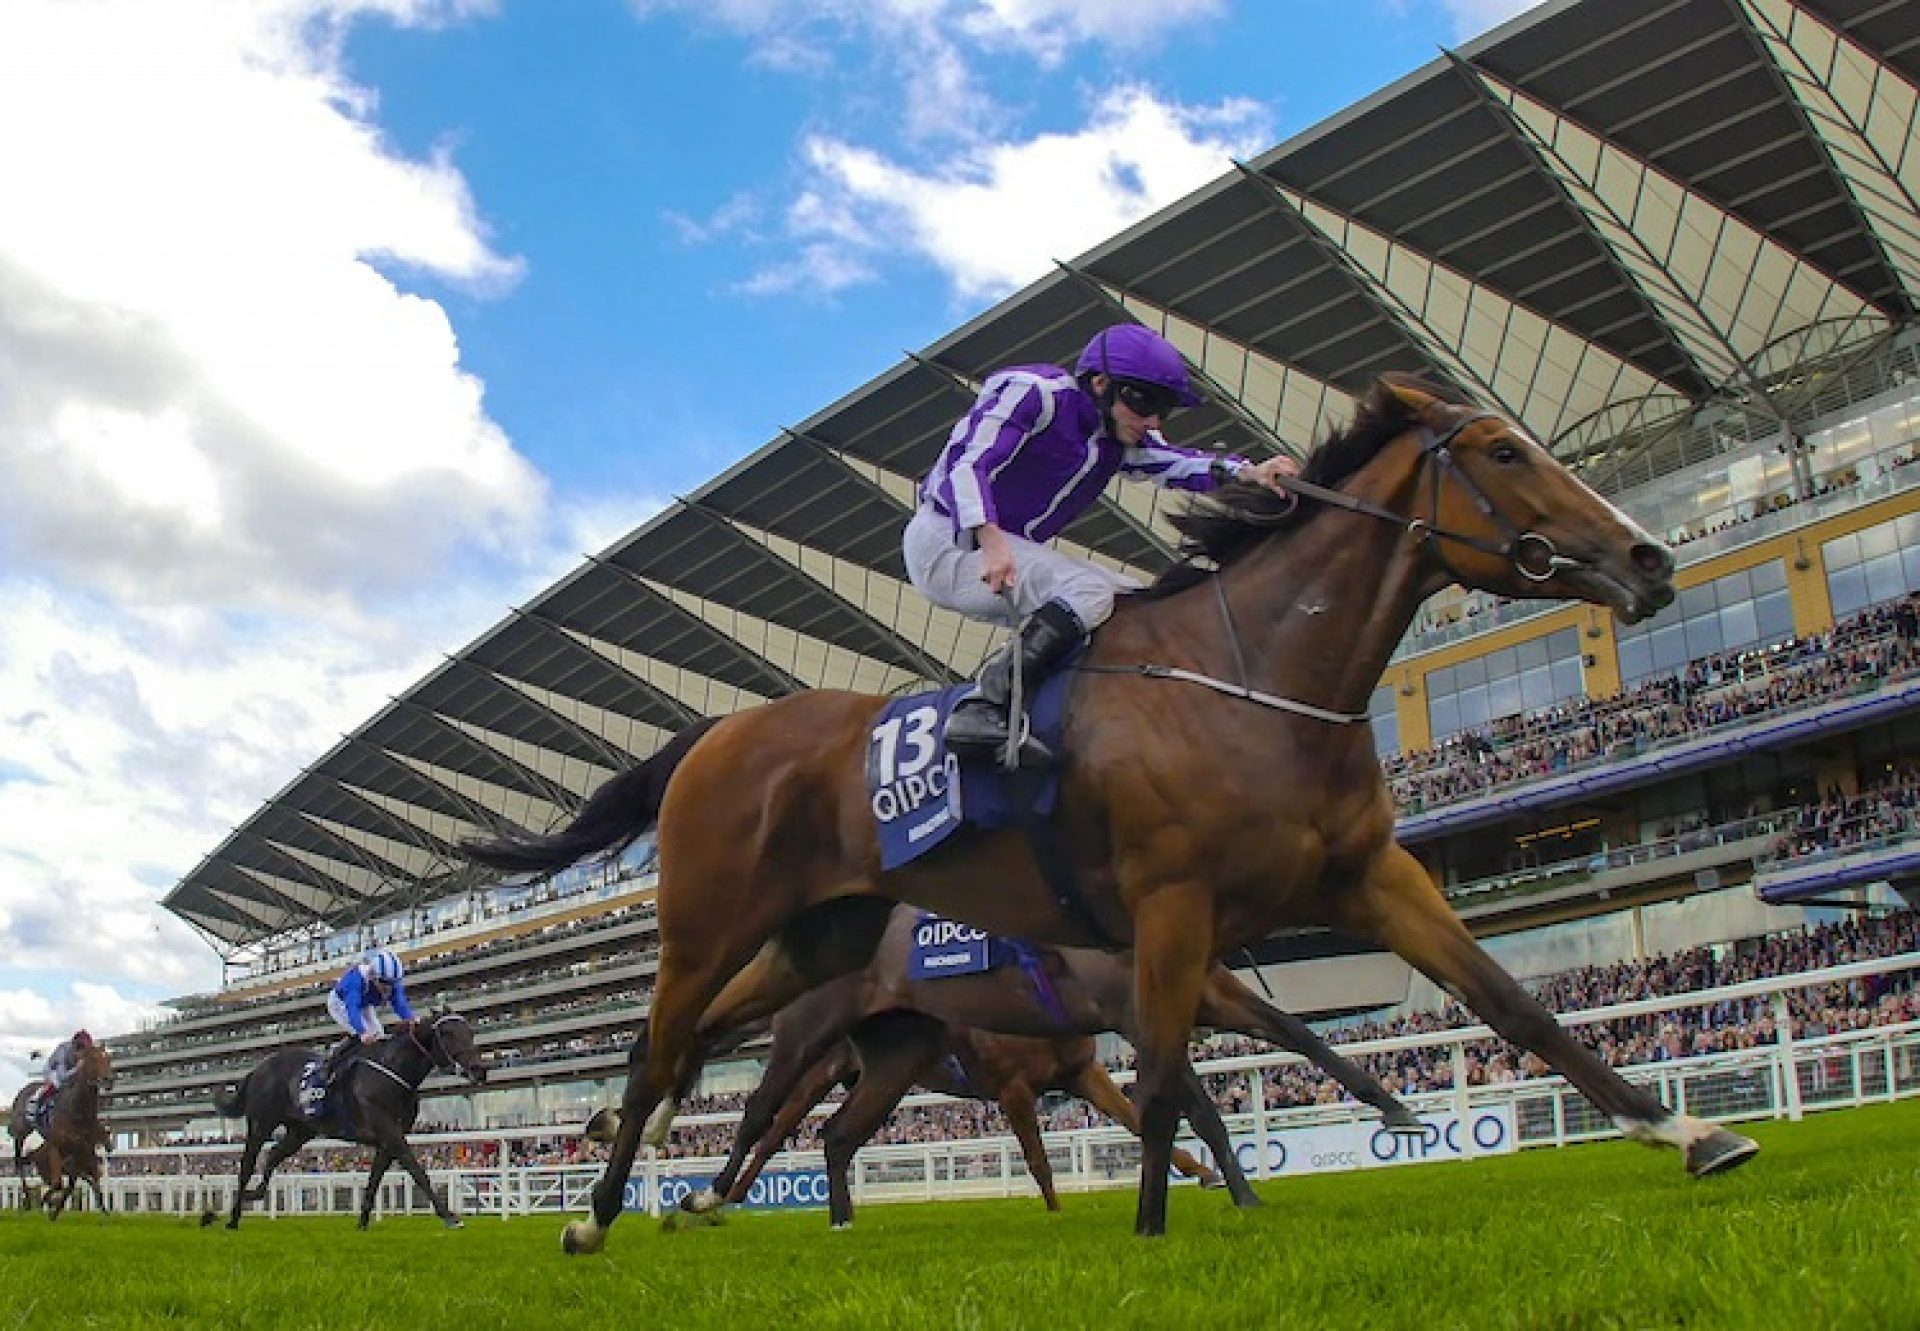 Minding (Galileo) winning the G1 QEII at Ascot